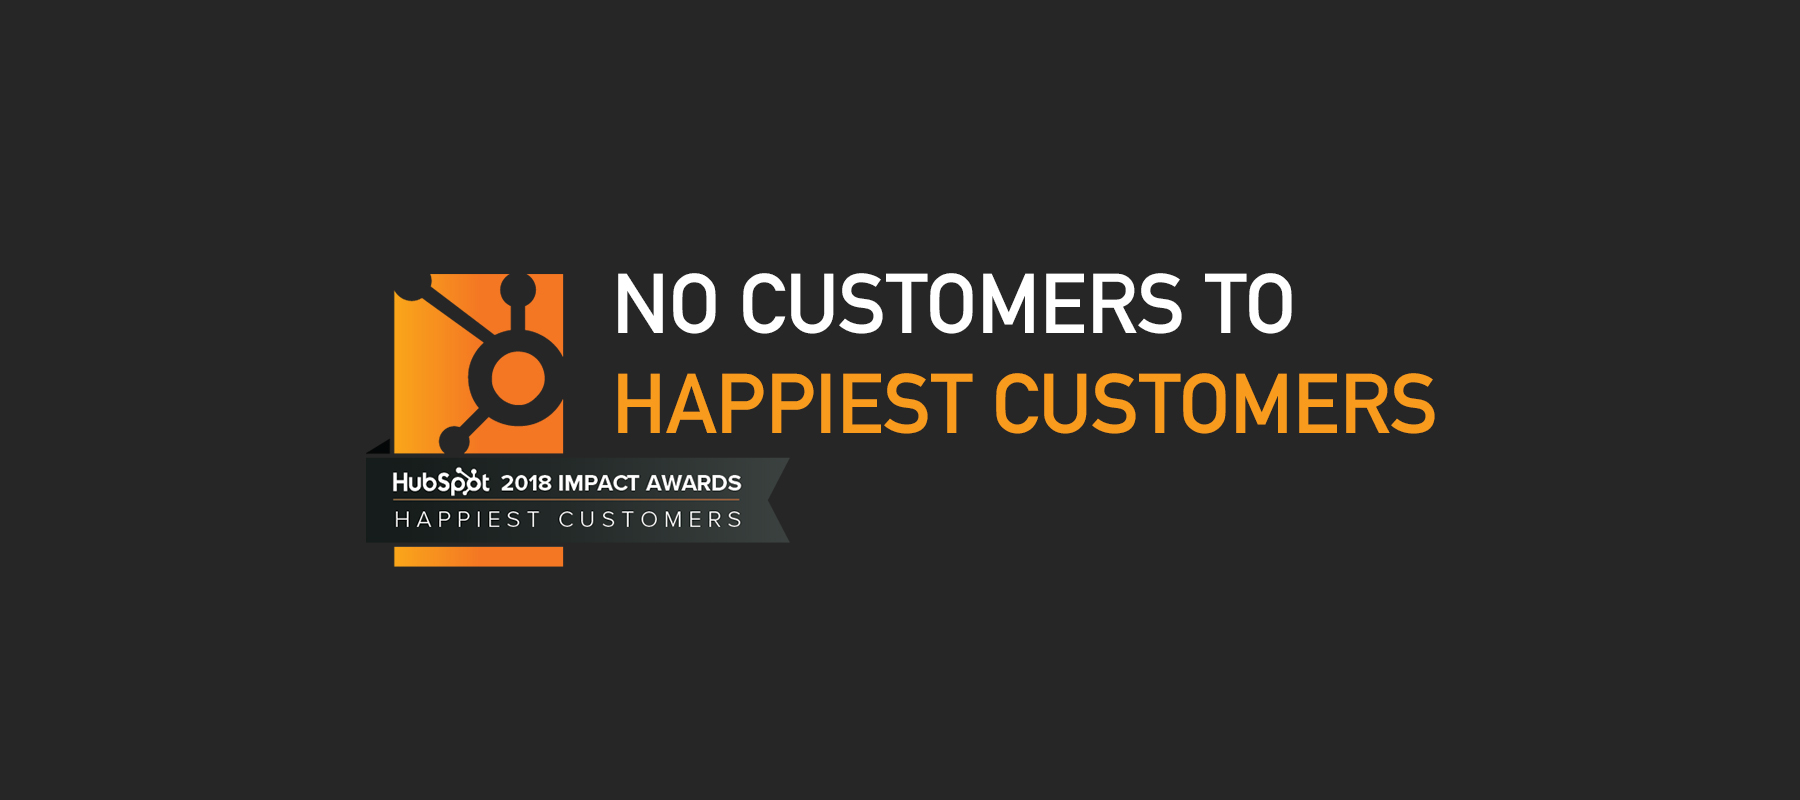 No Customers to Hubspot Happiest Customers